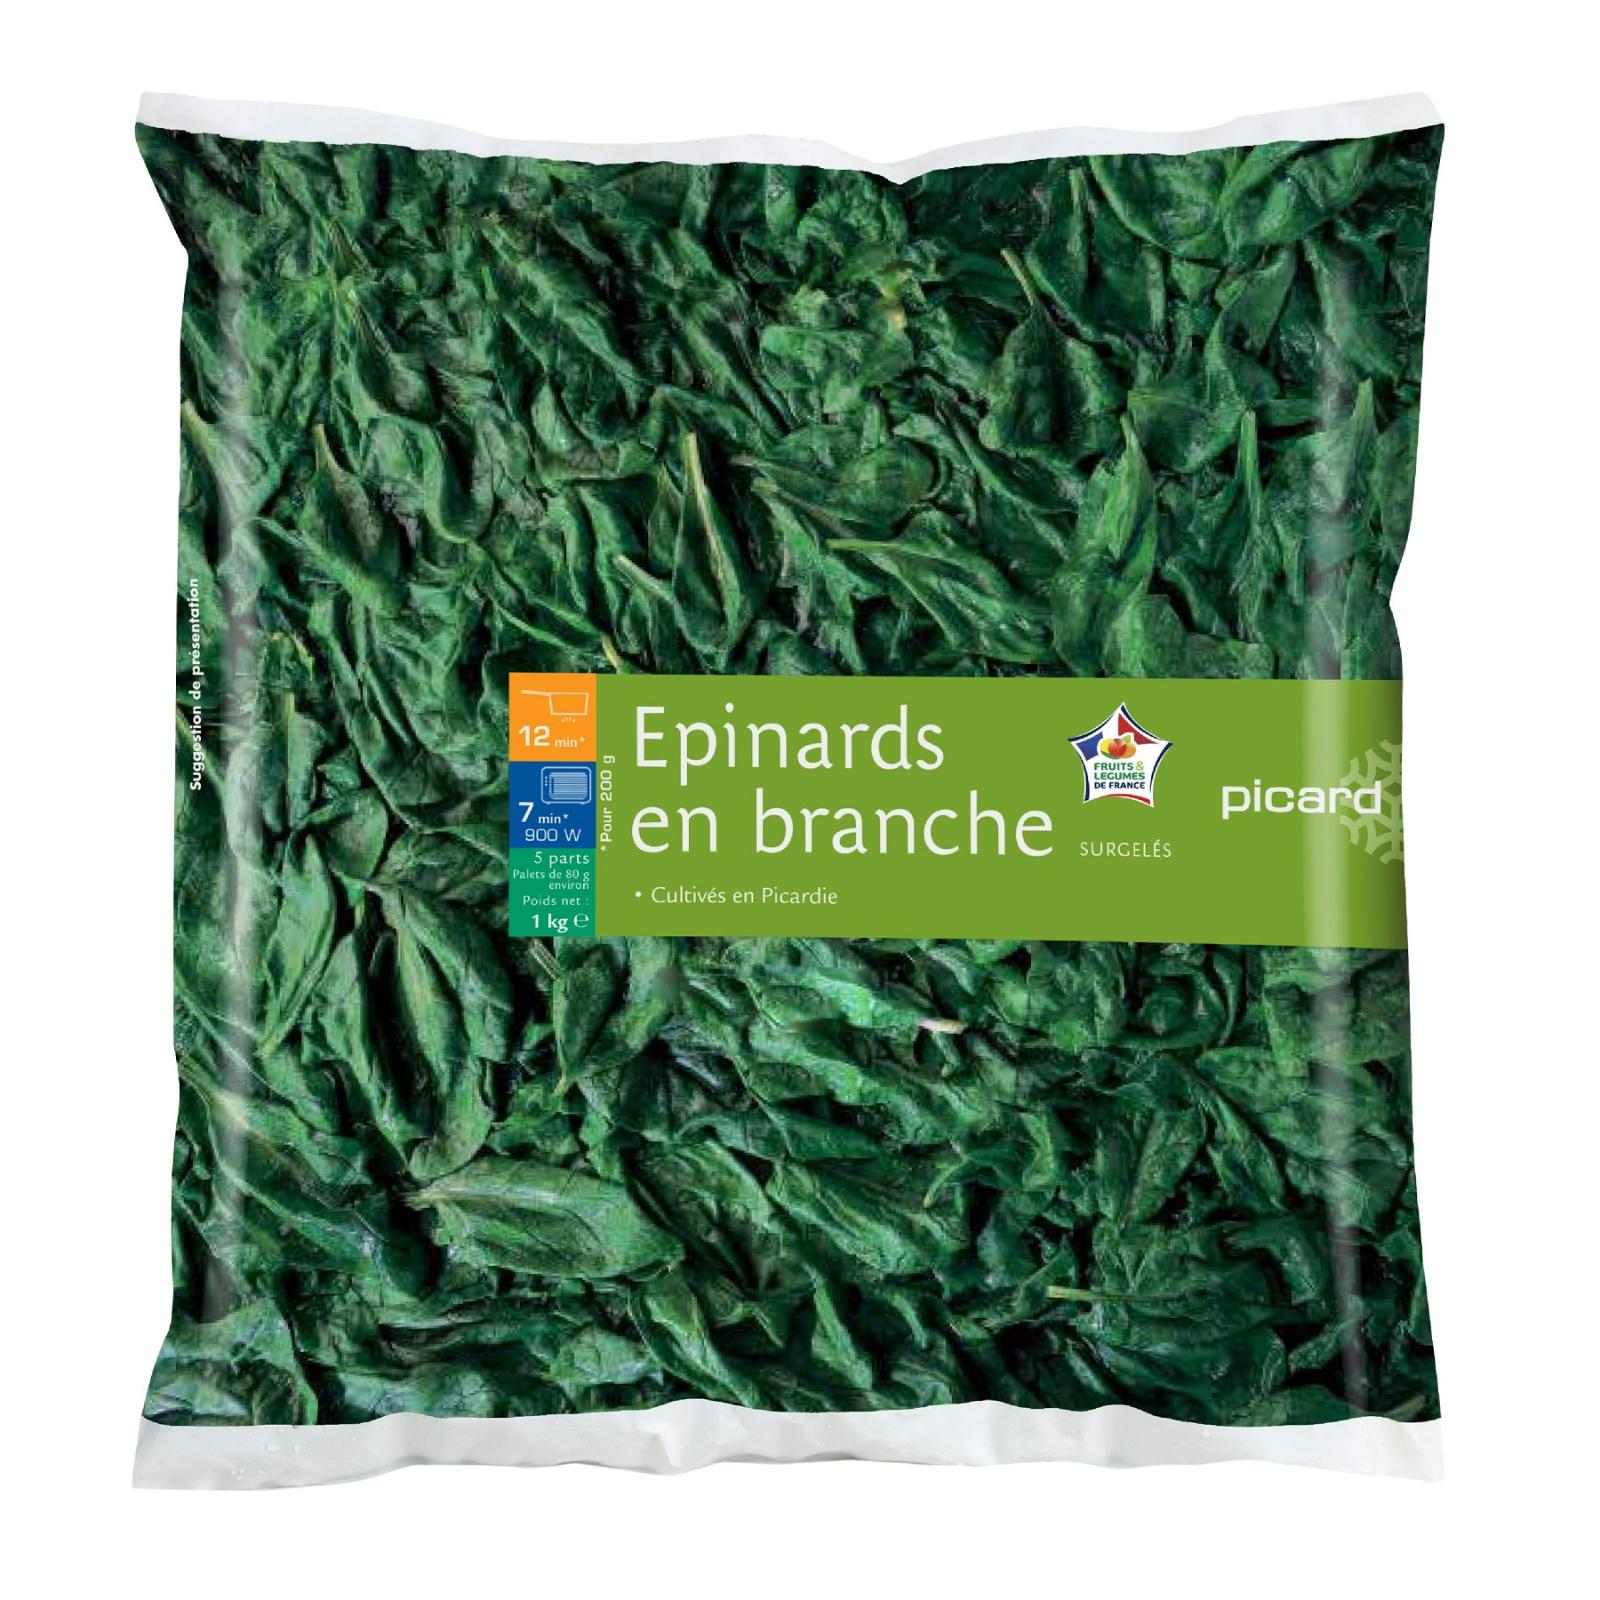 Picard Whole Spinach - Frozen